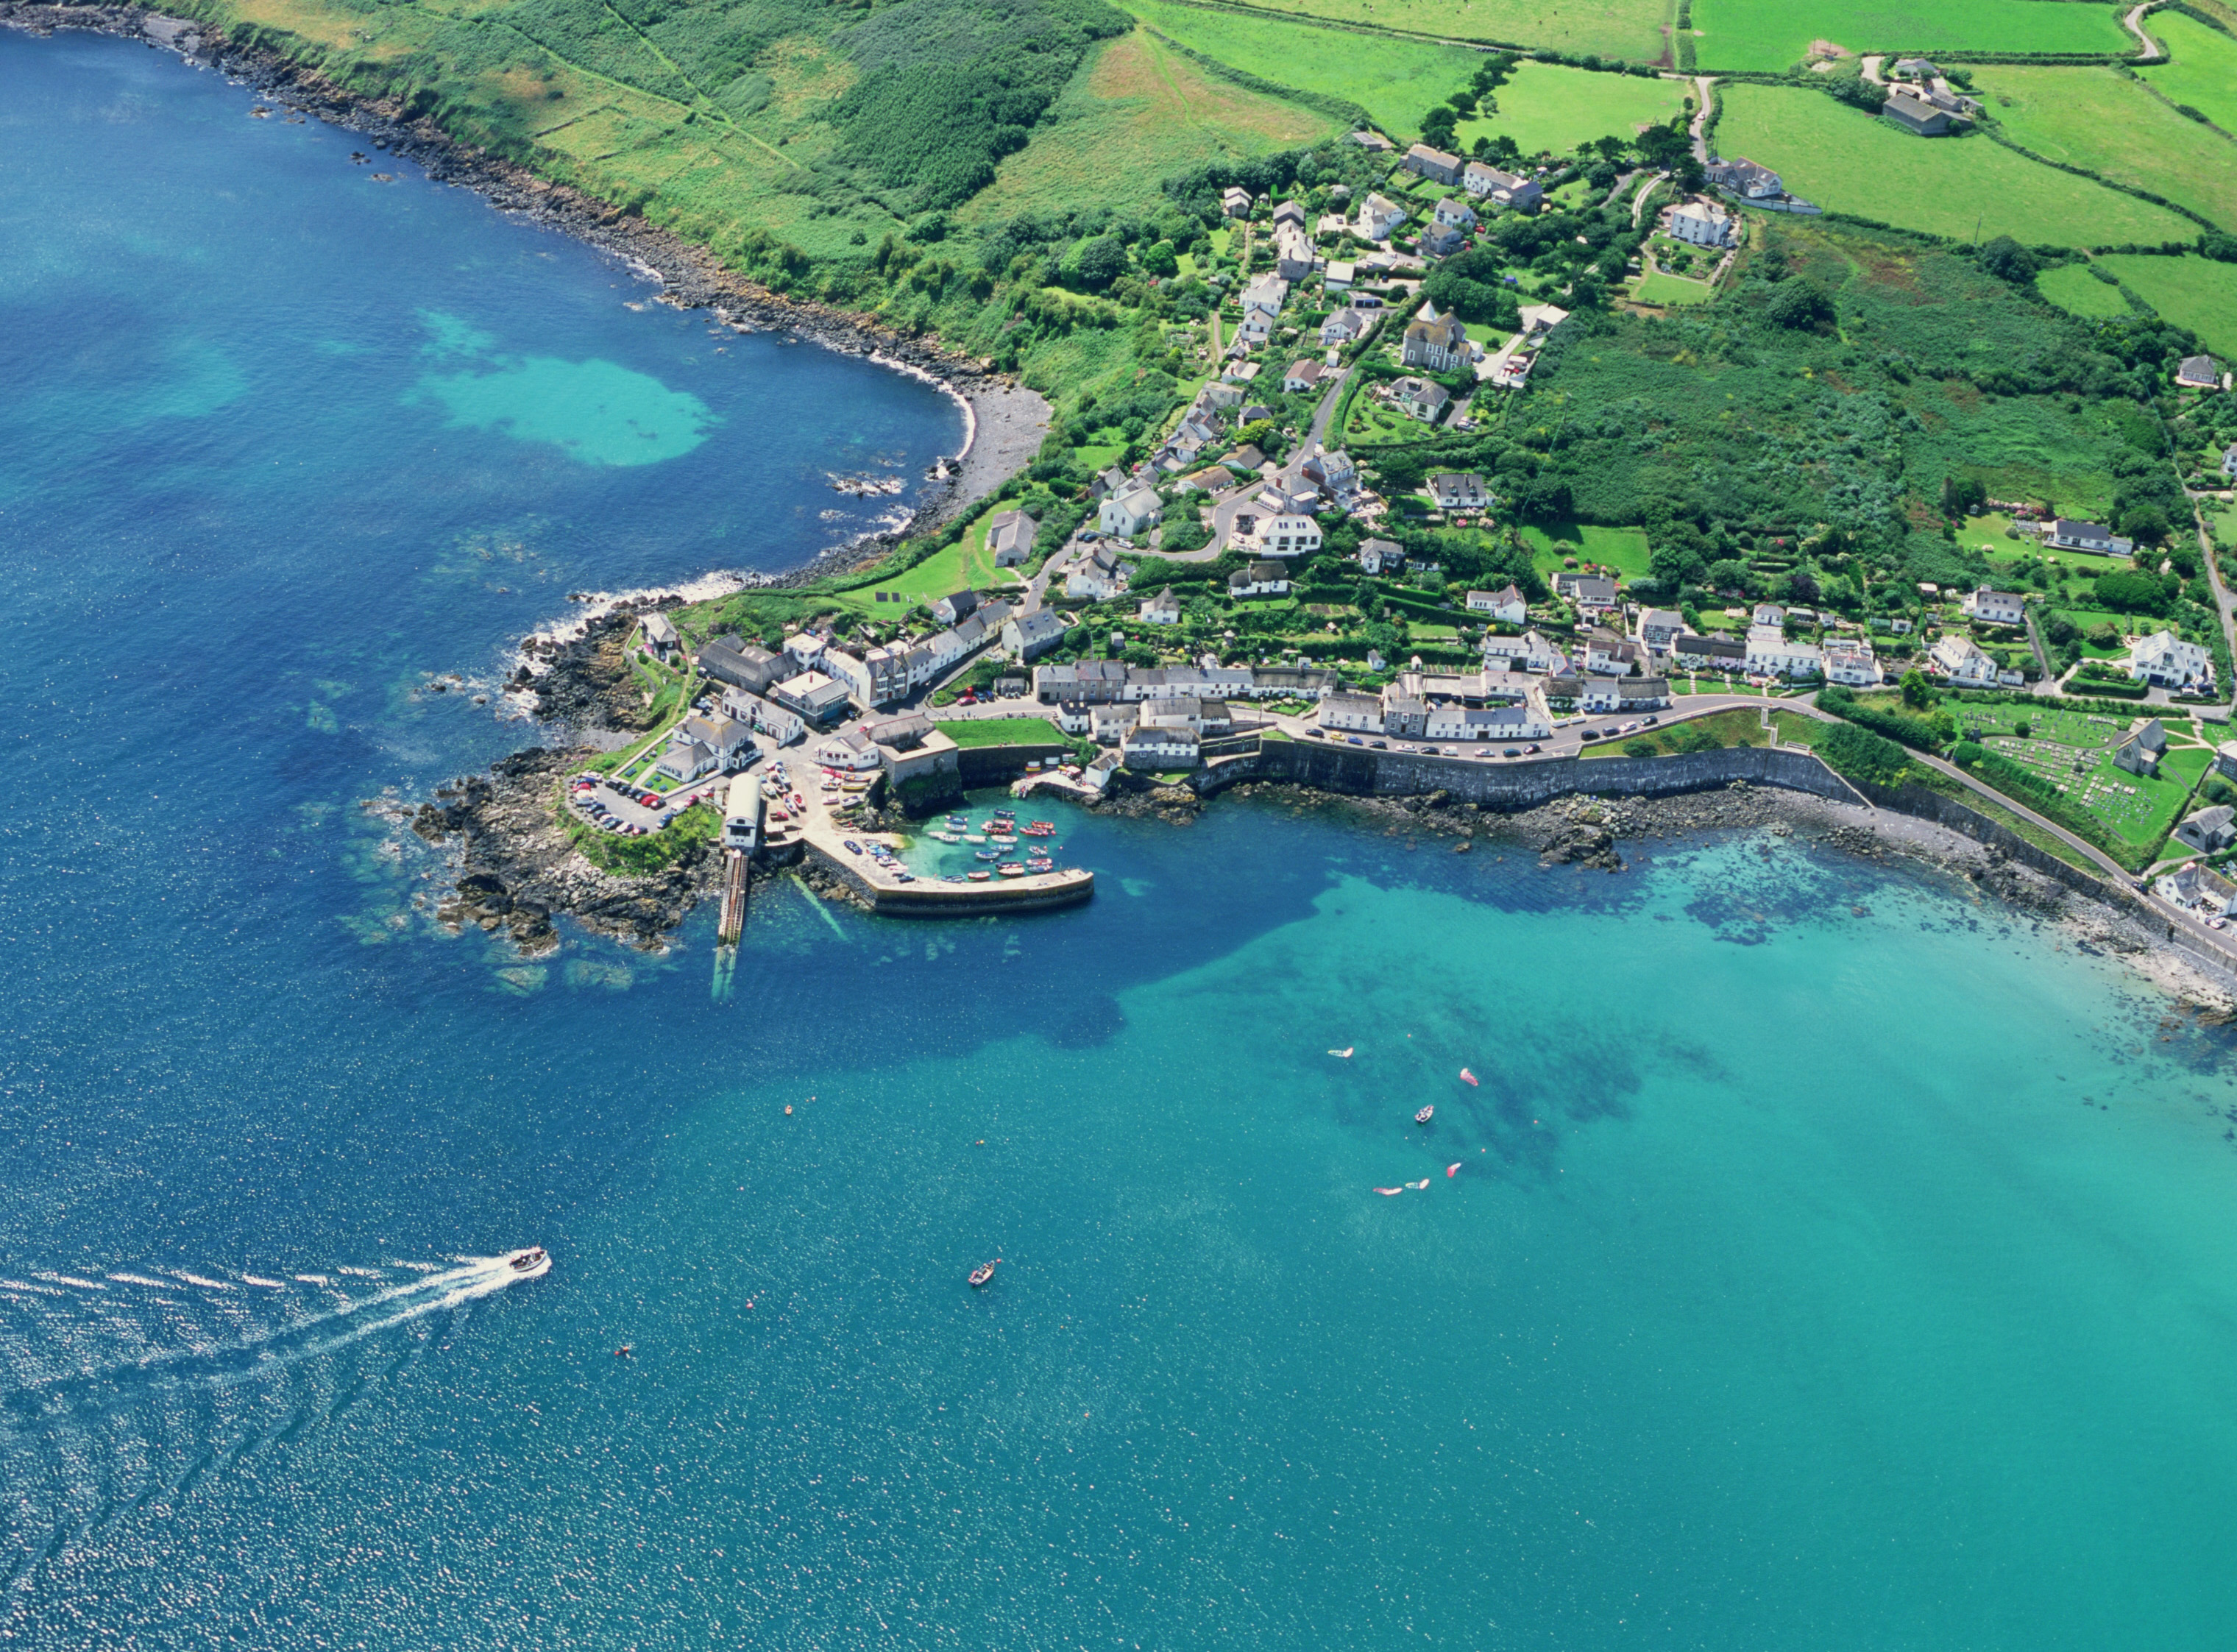 coverack Cornwall most beautiful town in cornwall